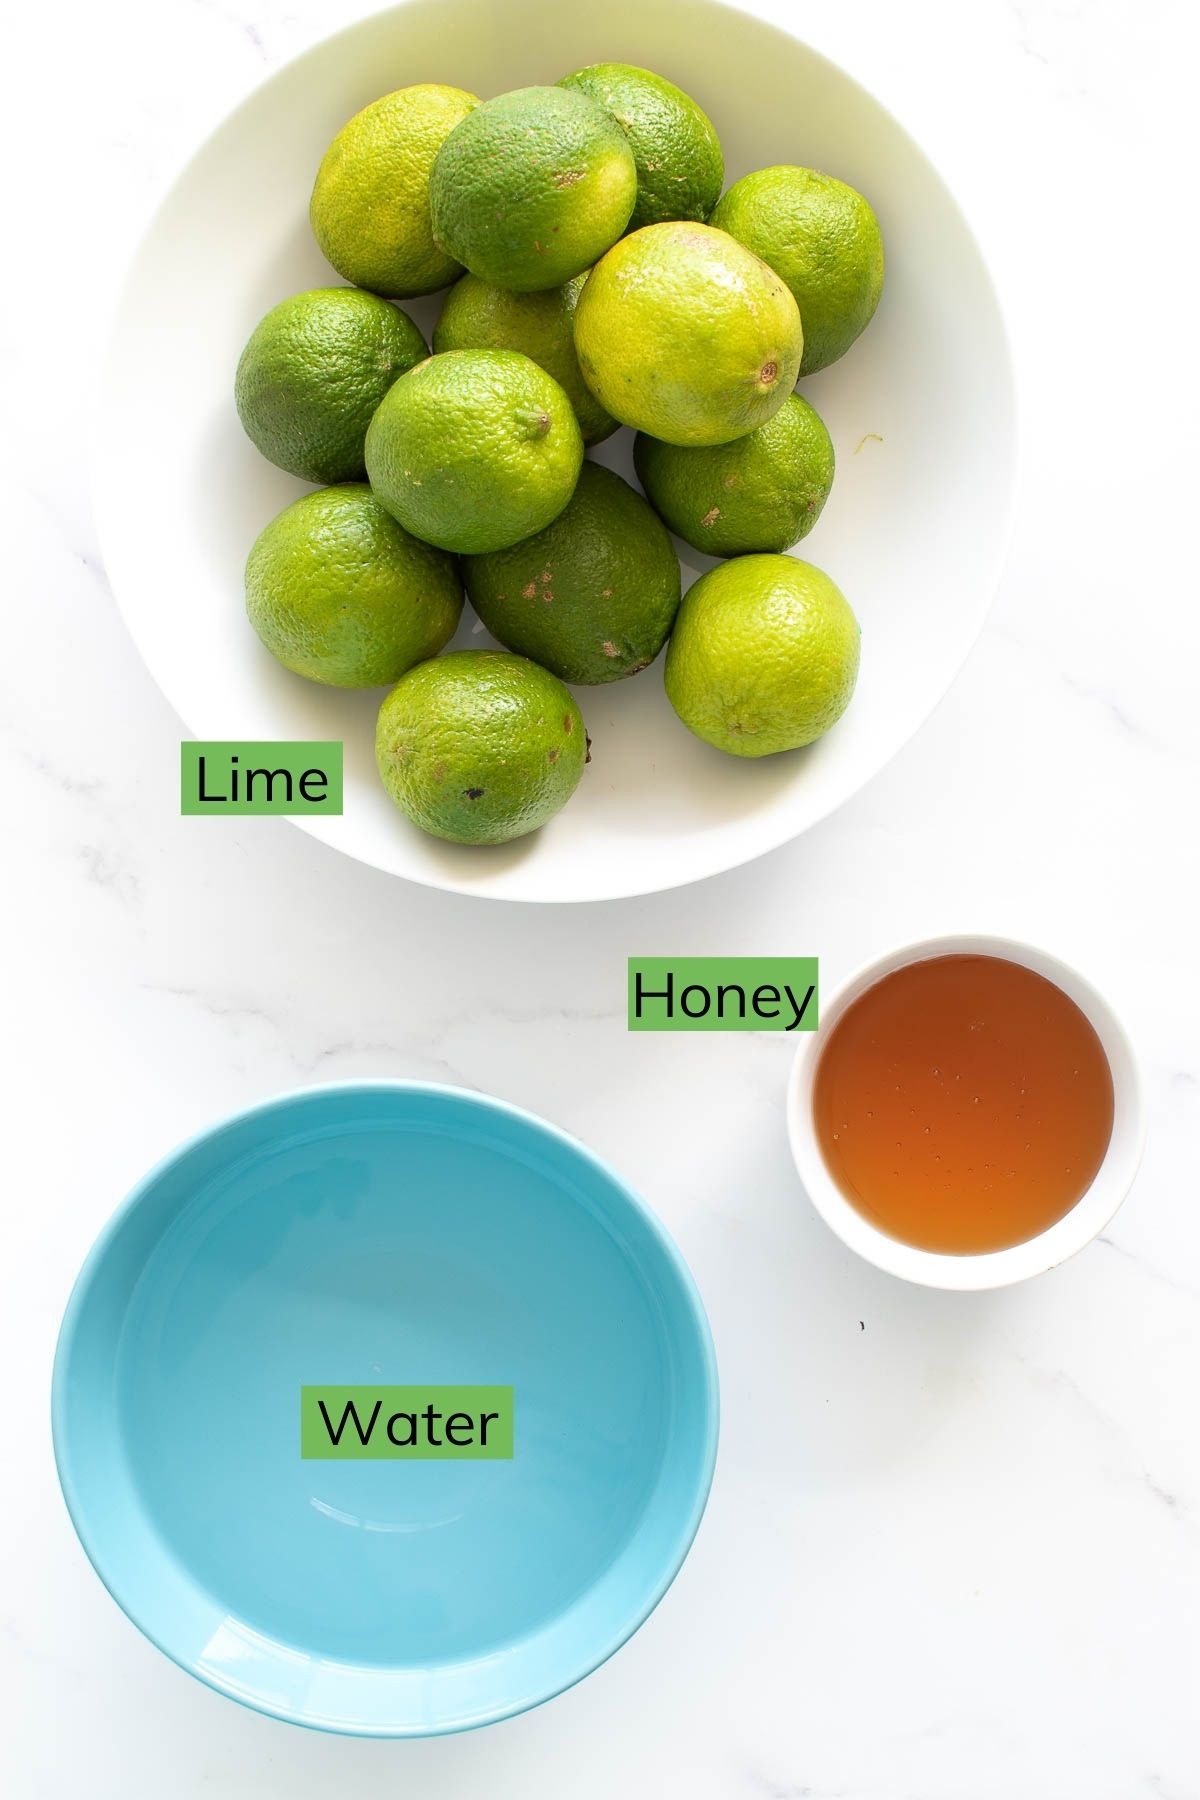 Lime, honey and water.